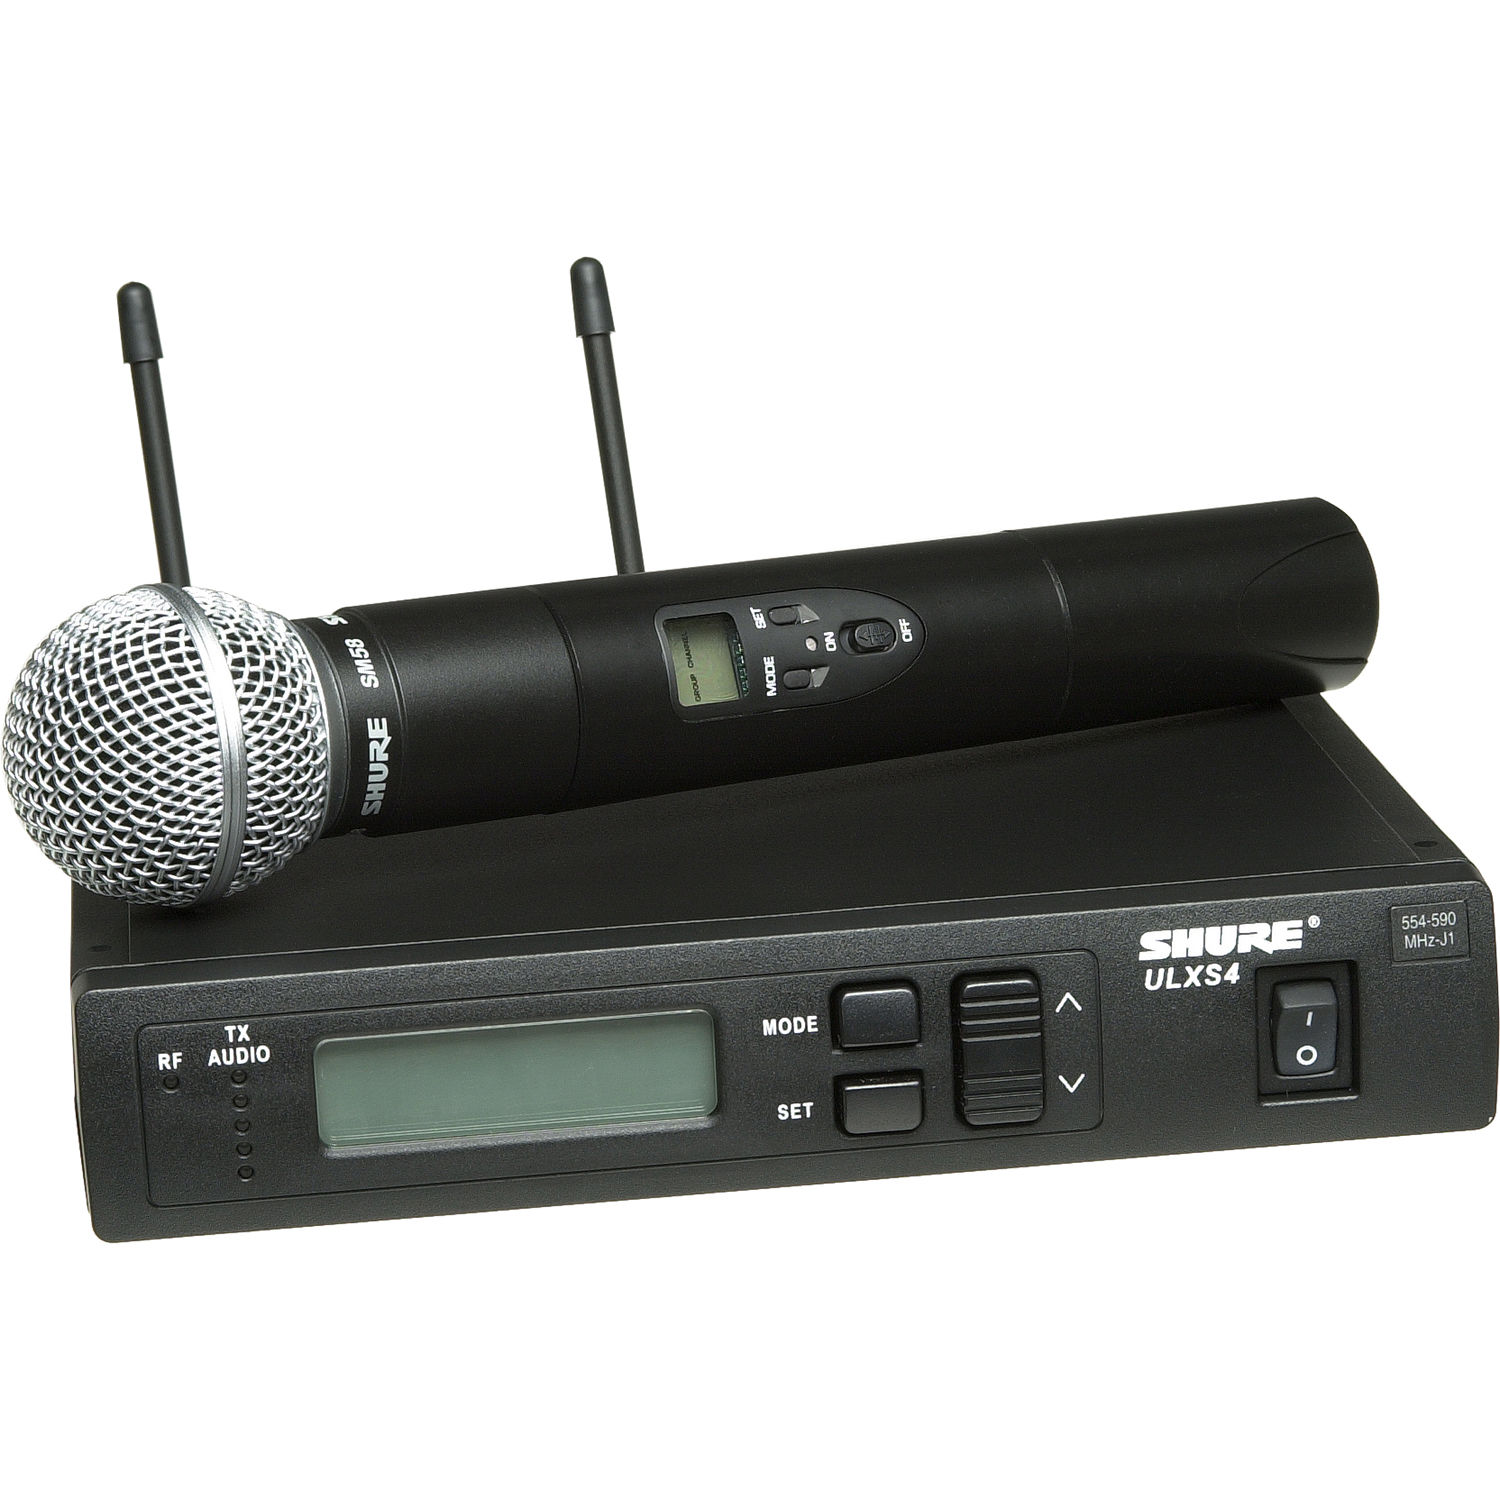 Shure Ulx Standard Series Wireless Handheld Ulxs24 58 J1 Bh Receiver Microphone Circuit System